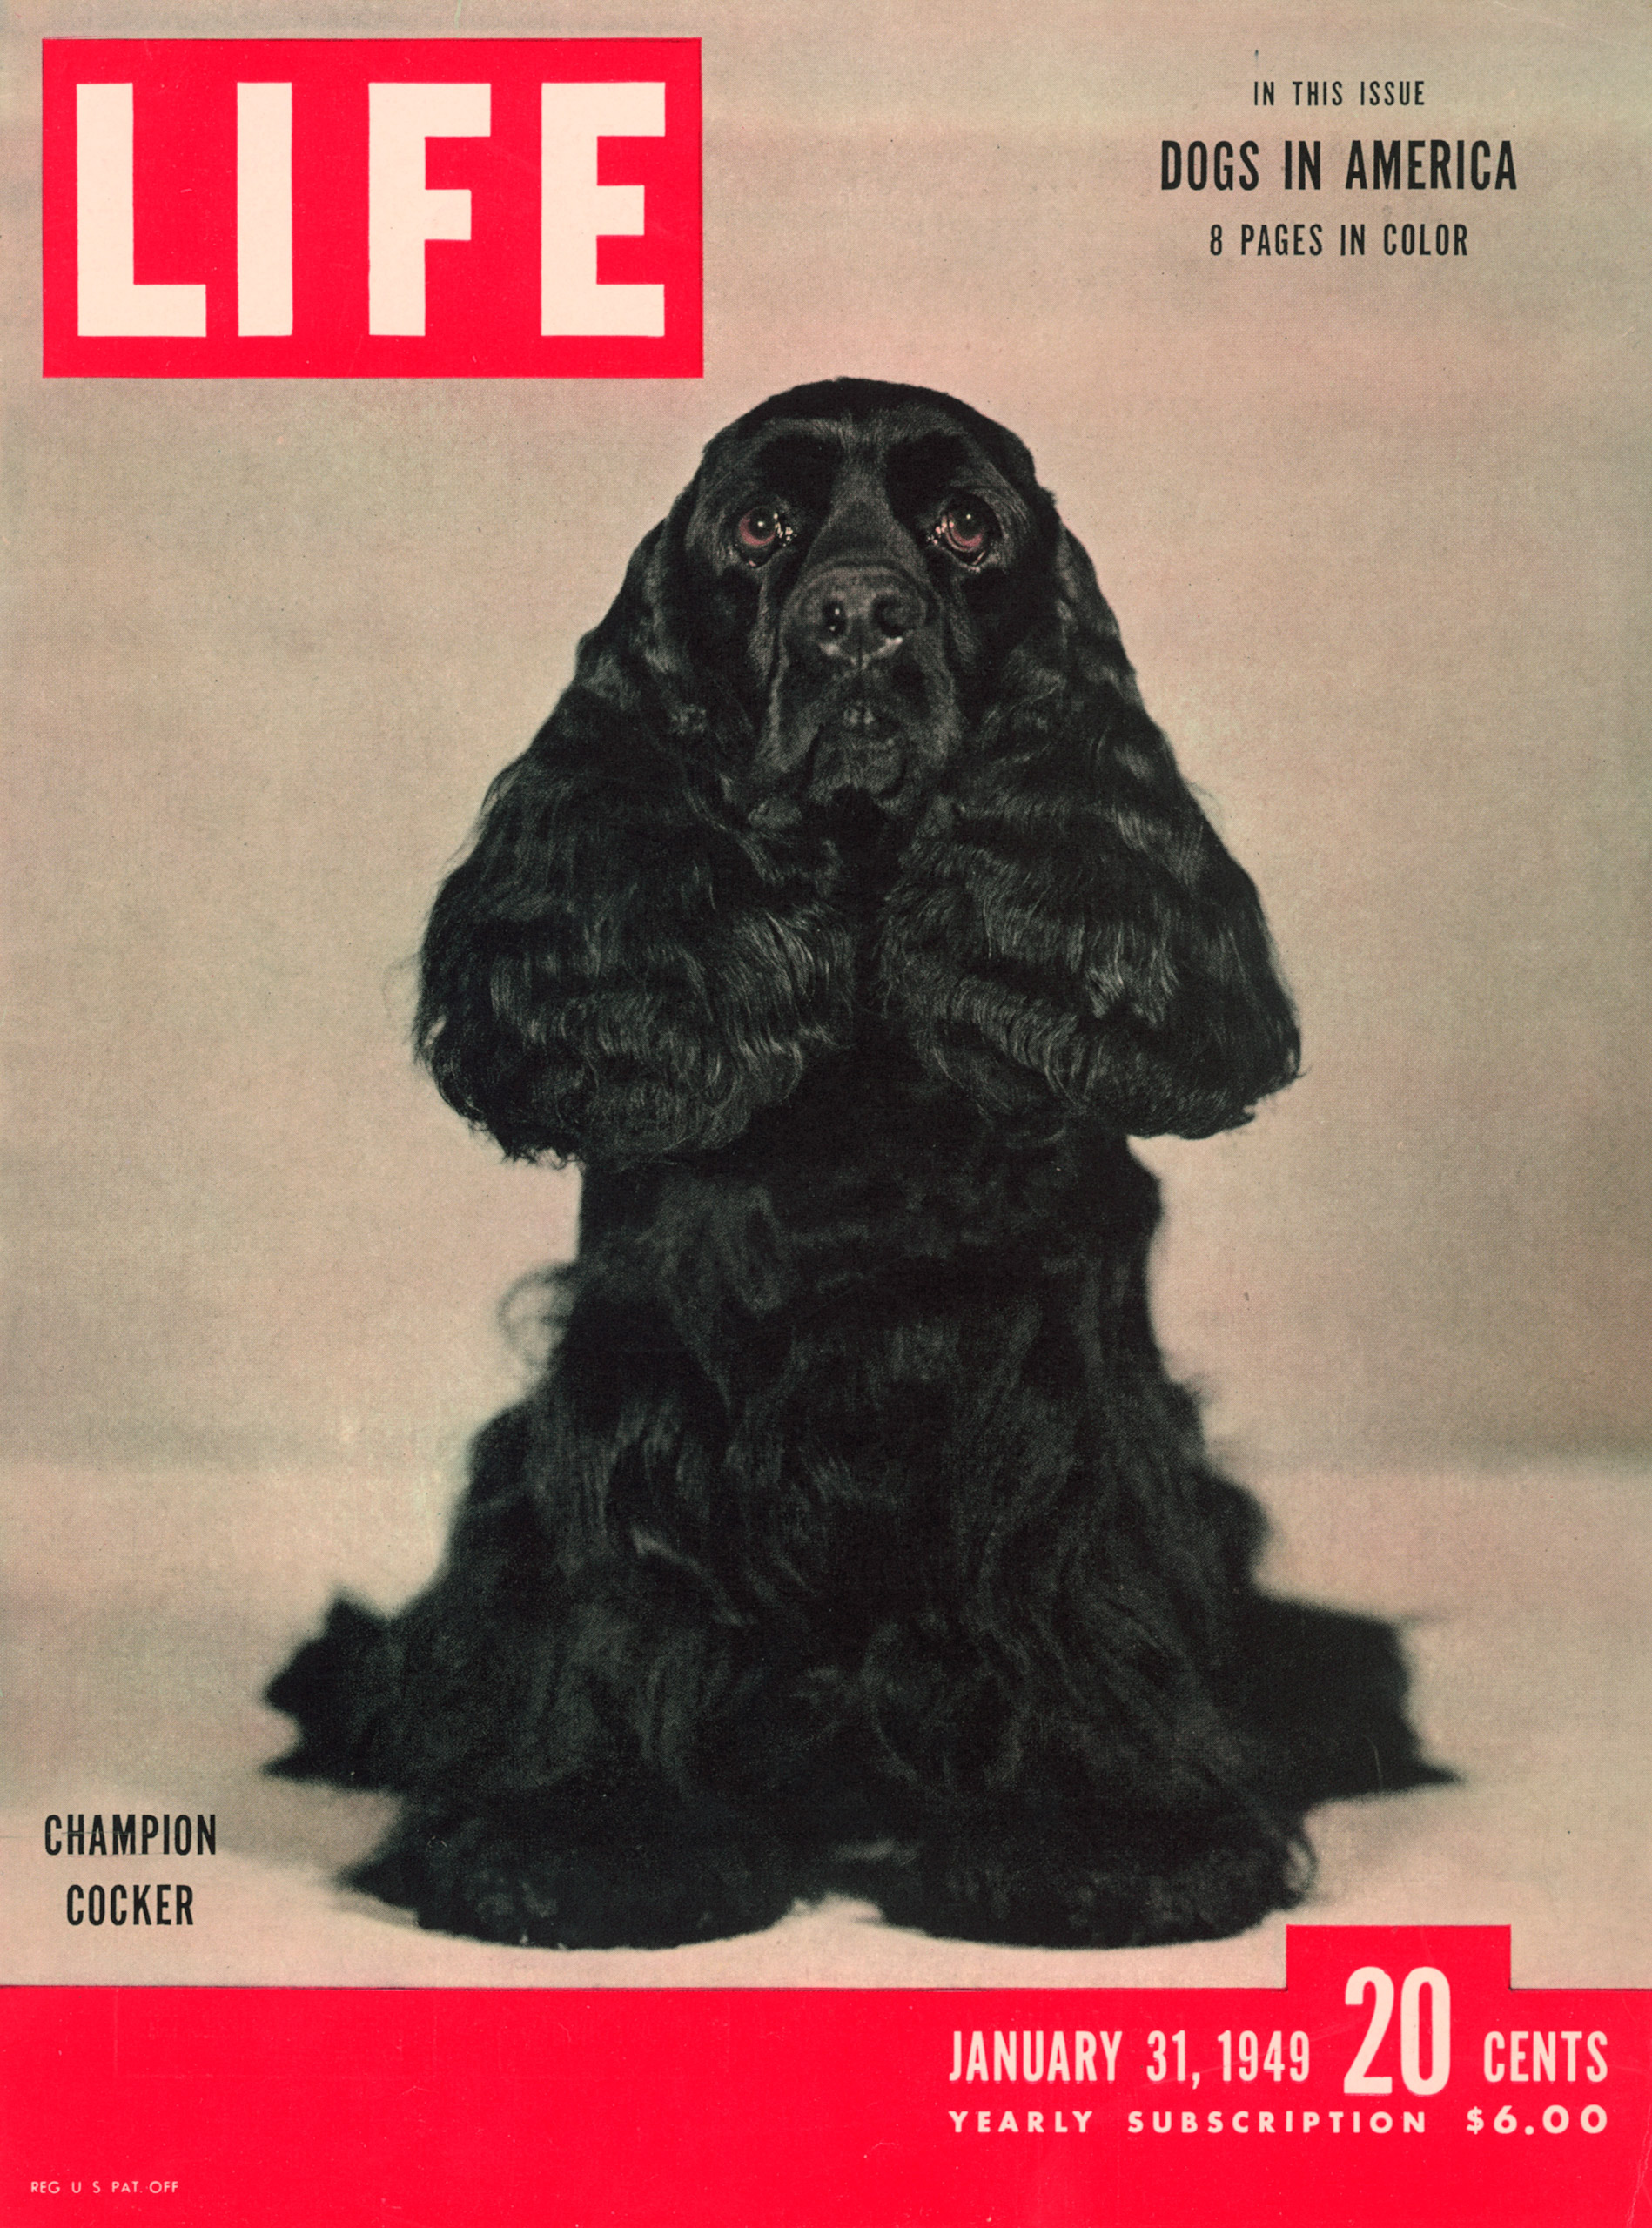 January 31, 1949 LIFE Magazine cover (photo by George Karger).